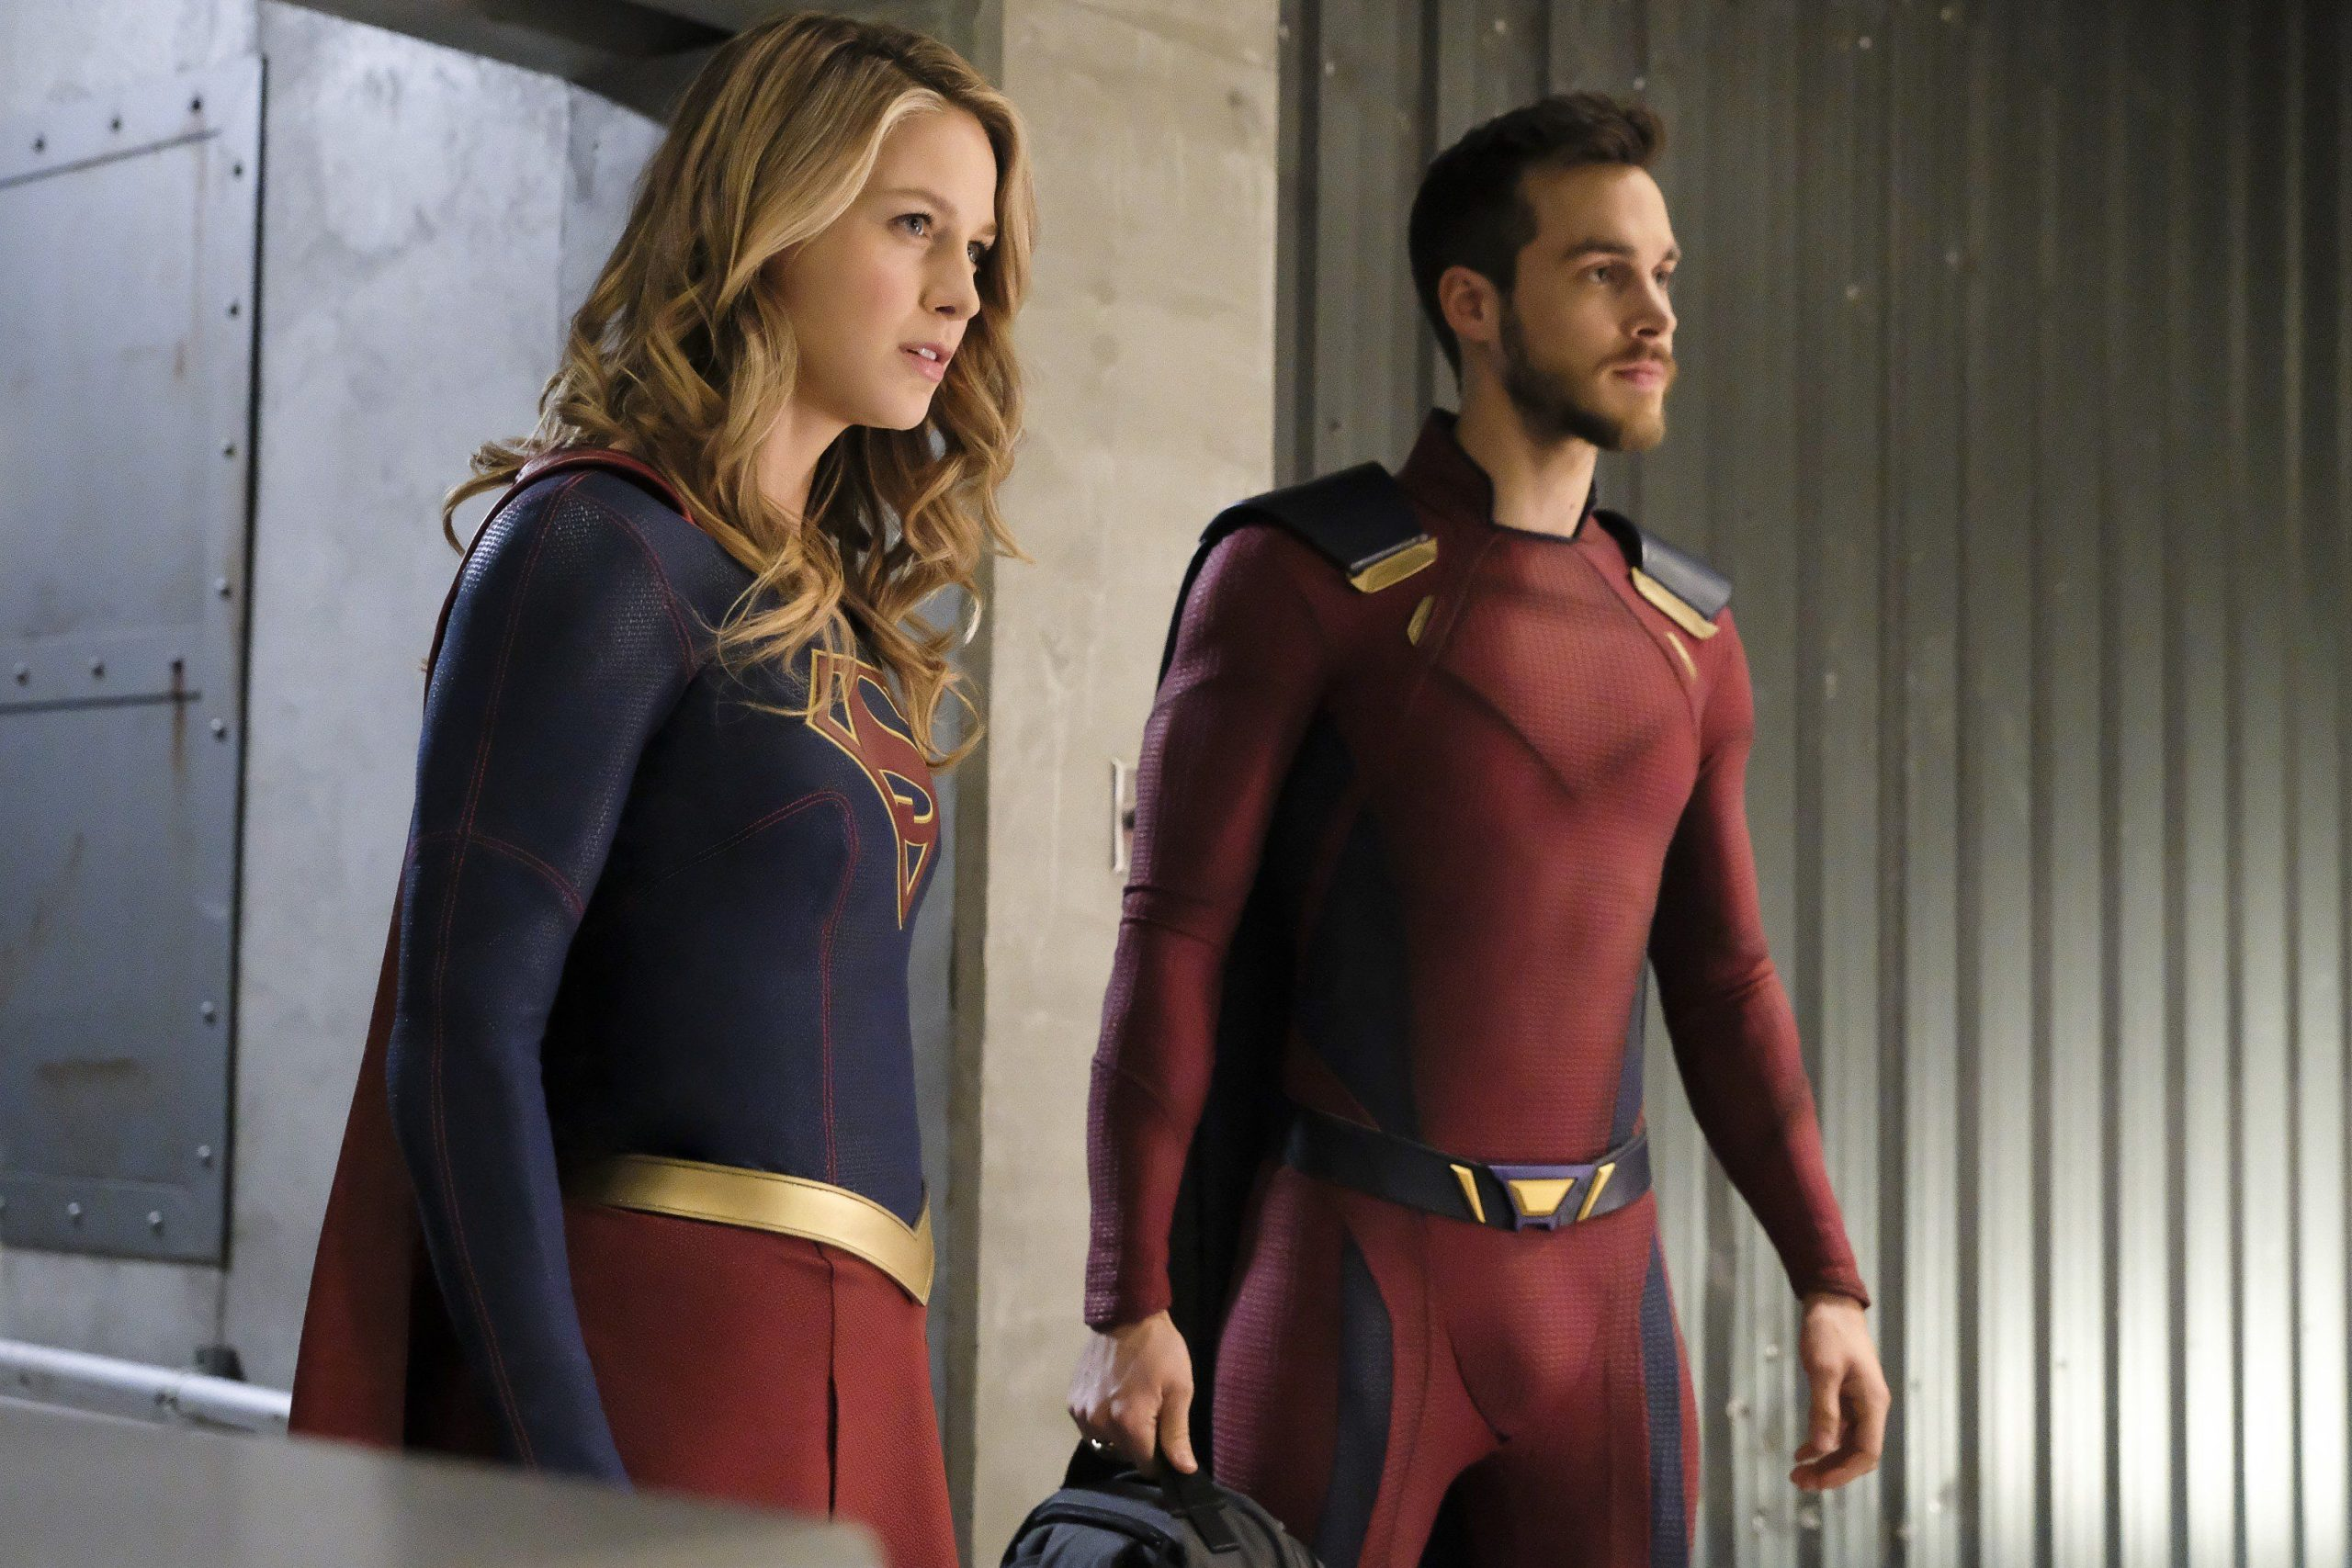 Chris Wood has also appeared in Supergirl as Mon-El